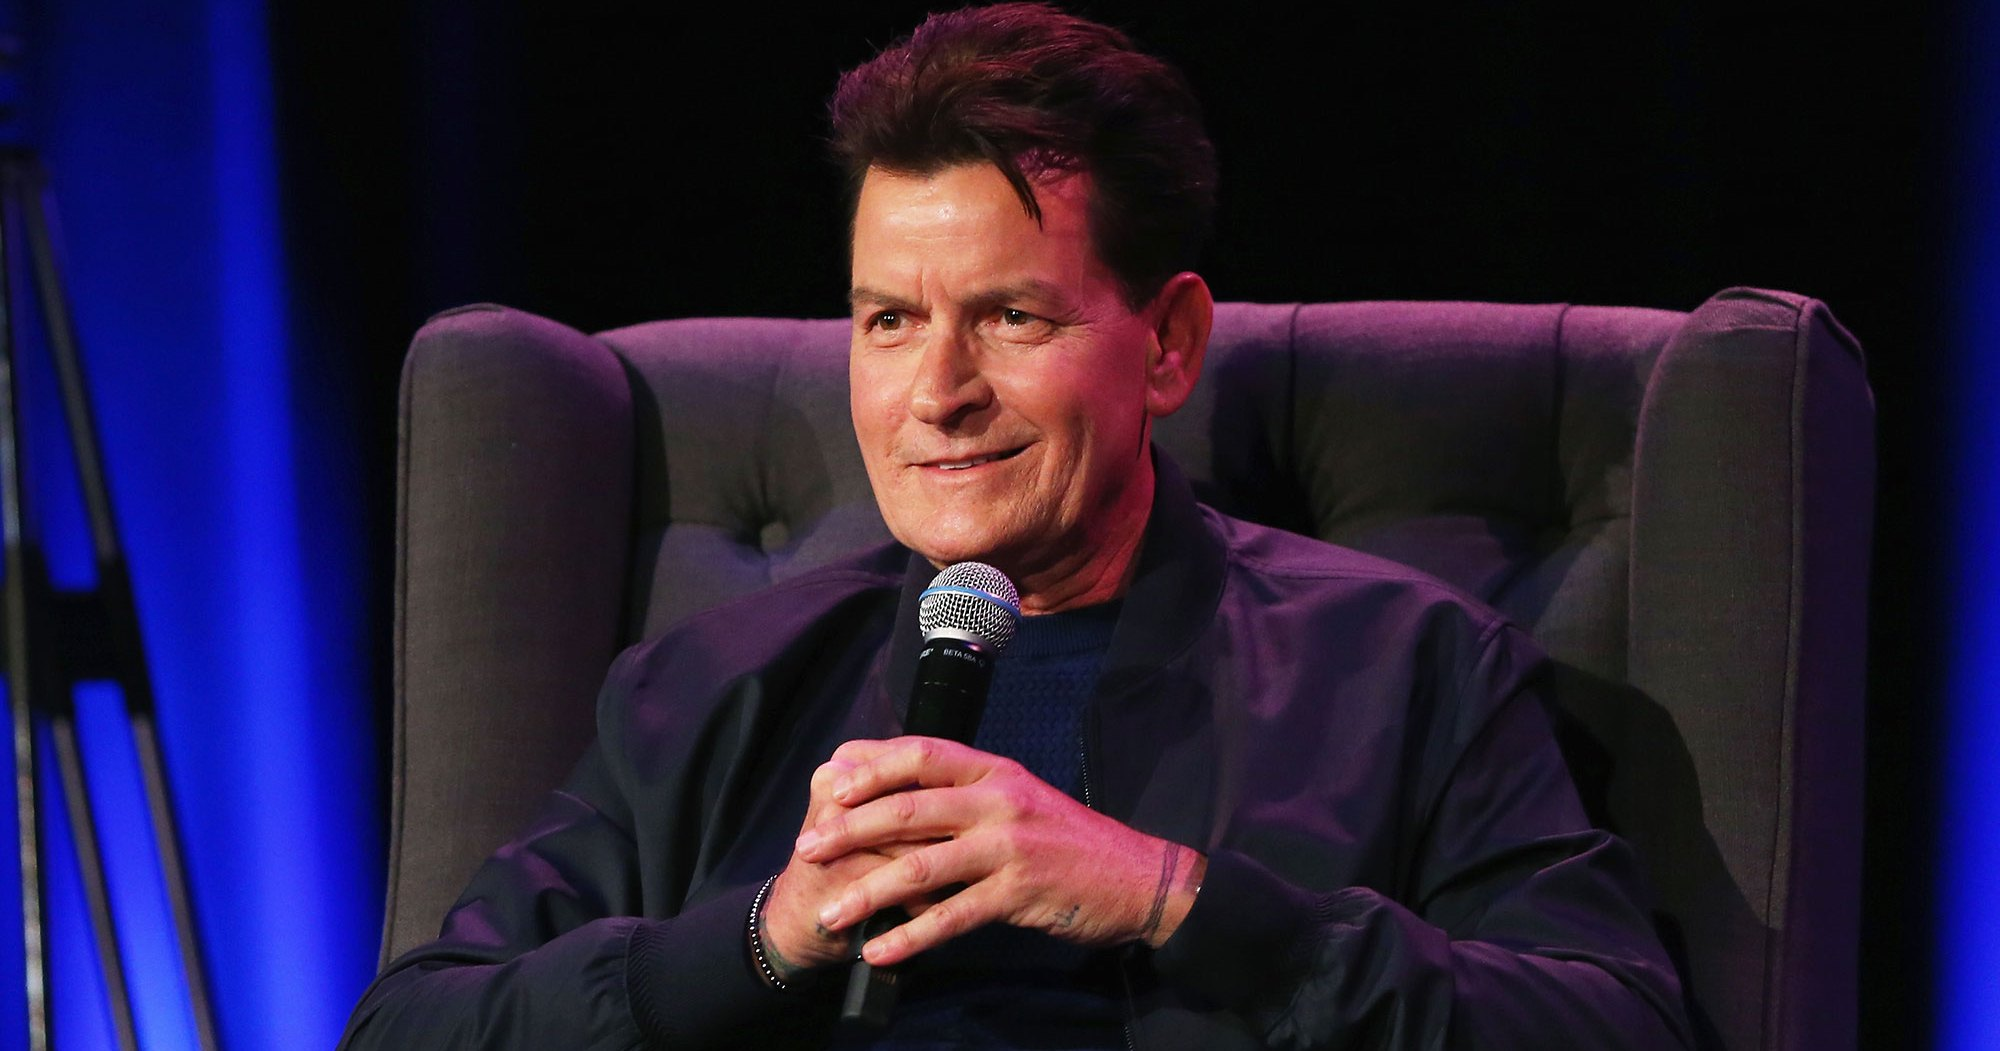 Charlie Sheen Celebrates One Year of Sobriety: '#TotallyFocused'